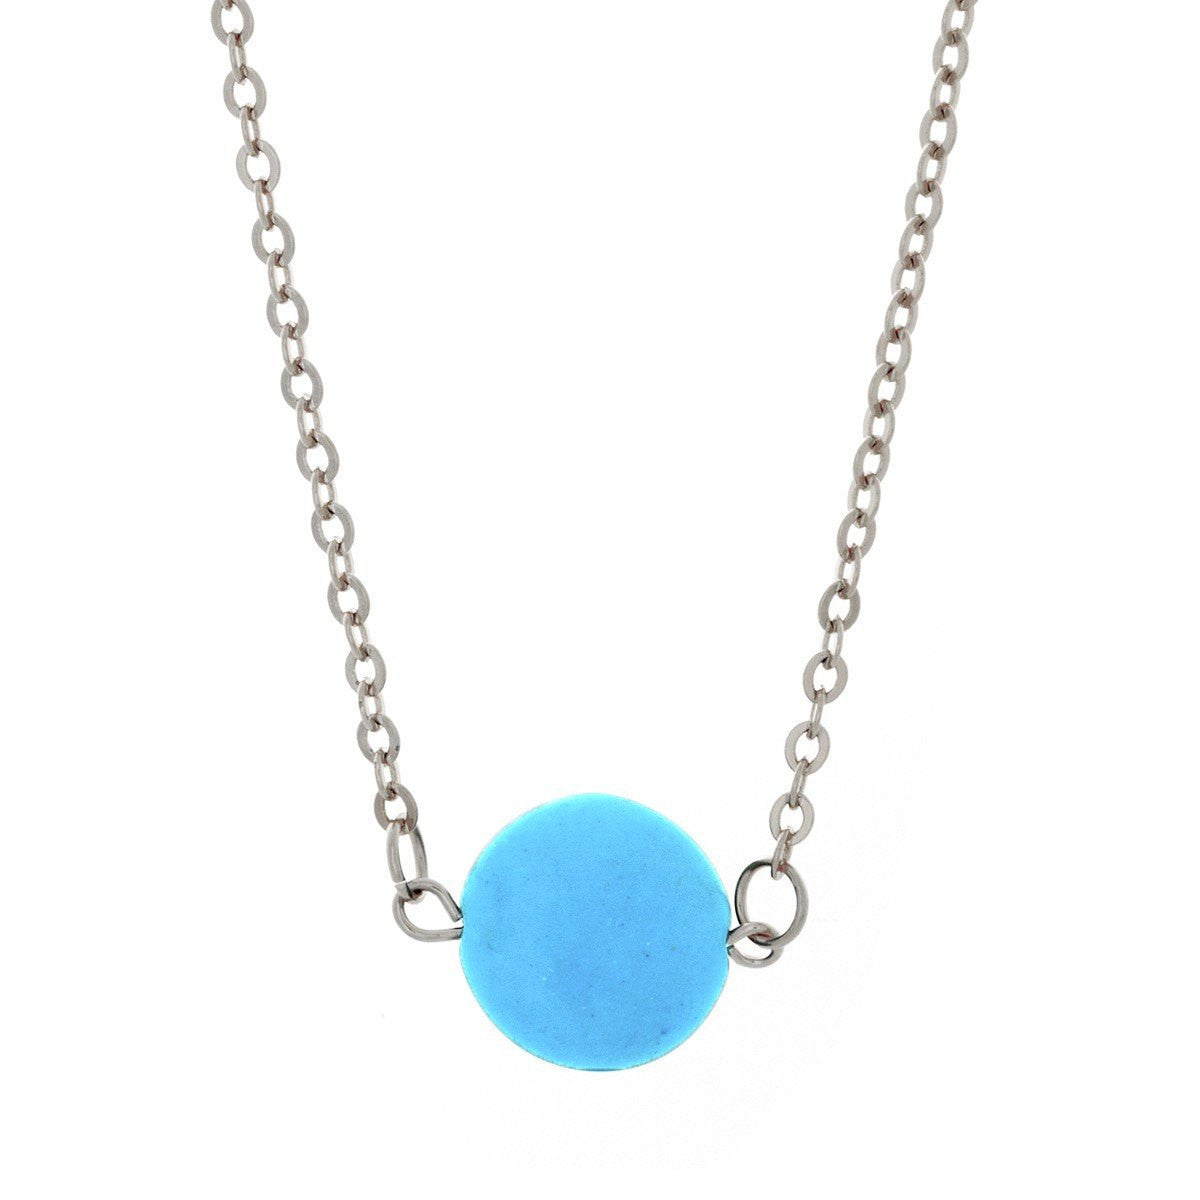 arizona life turquoise necklace chalceydont surfgirl wanderlust products beach boutique